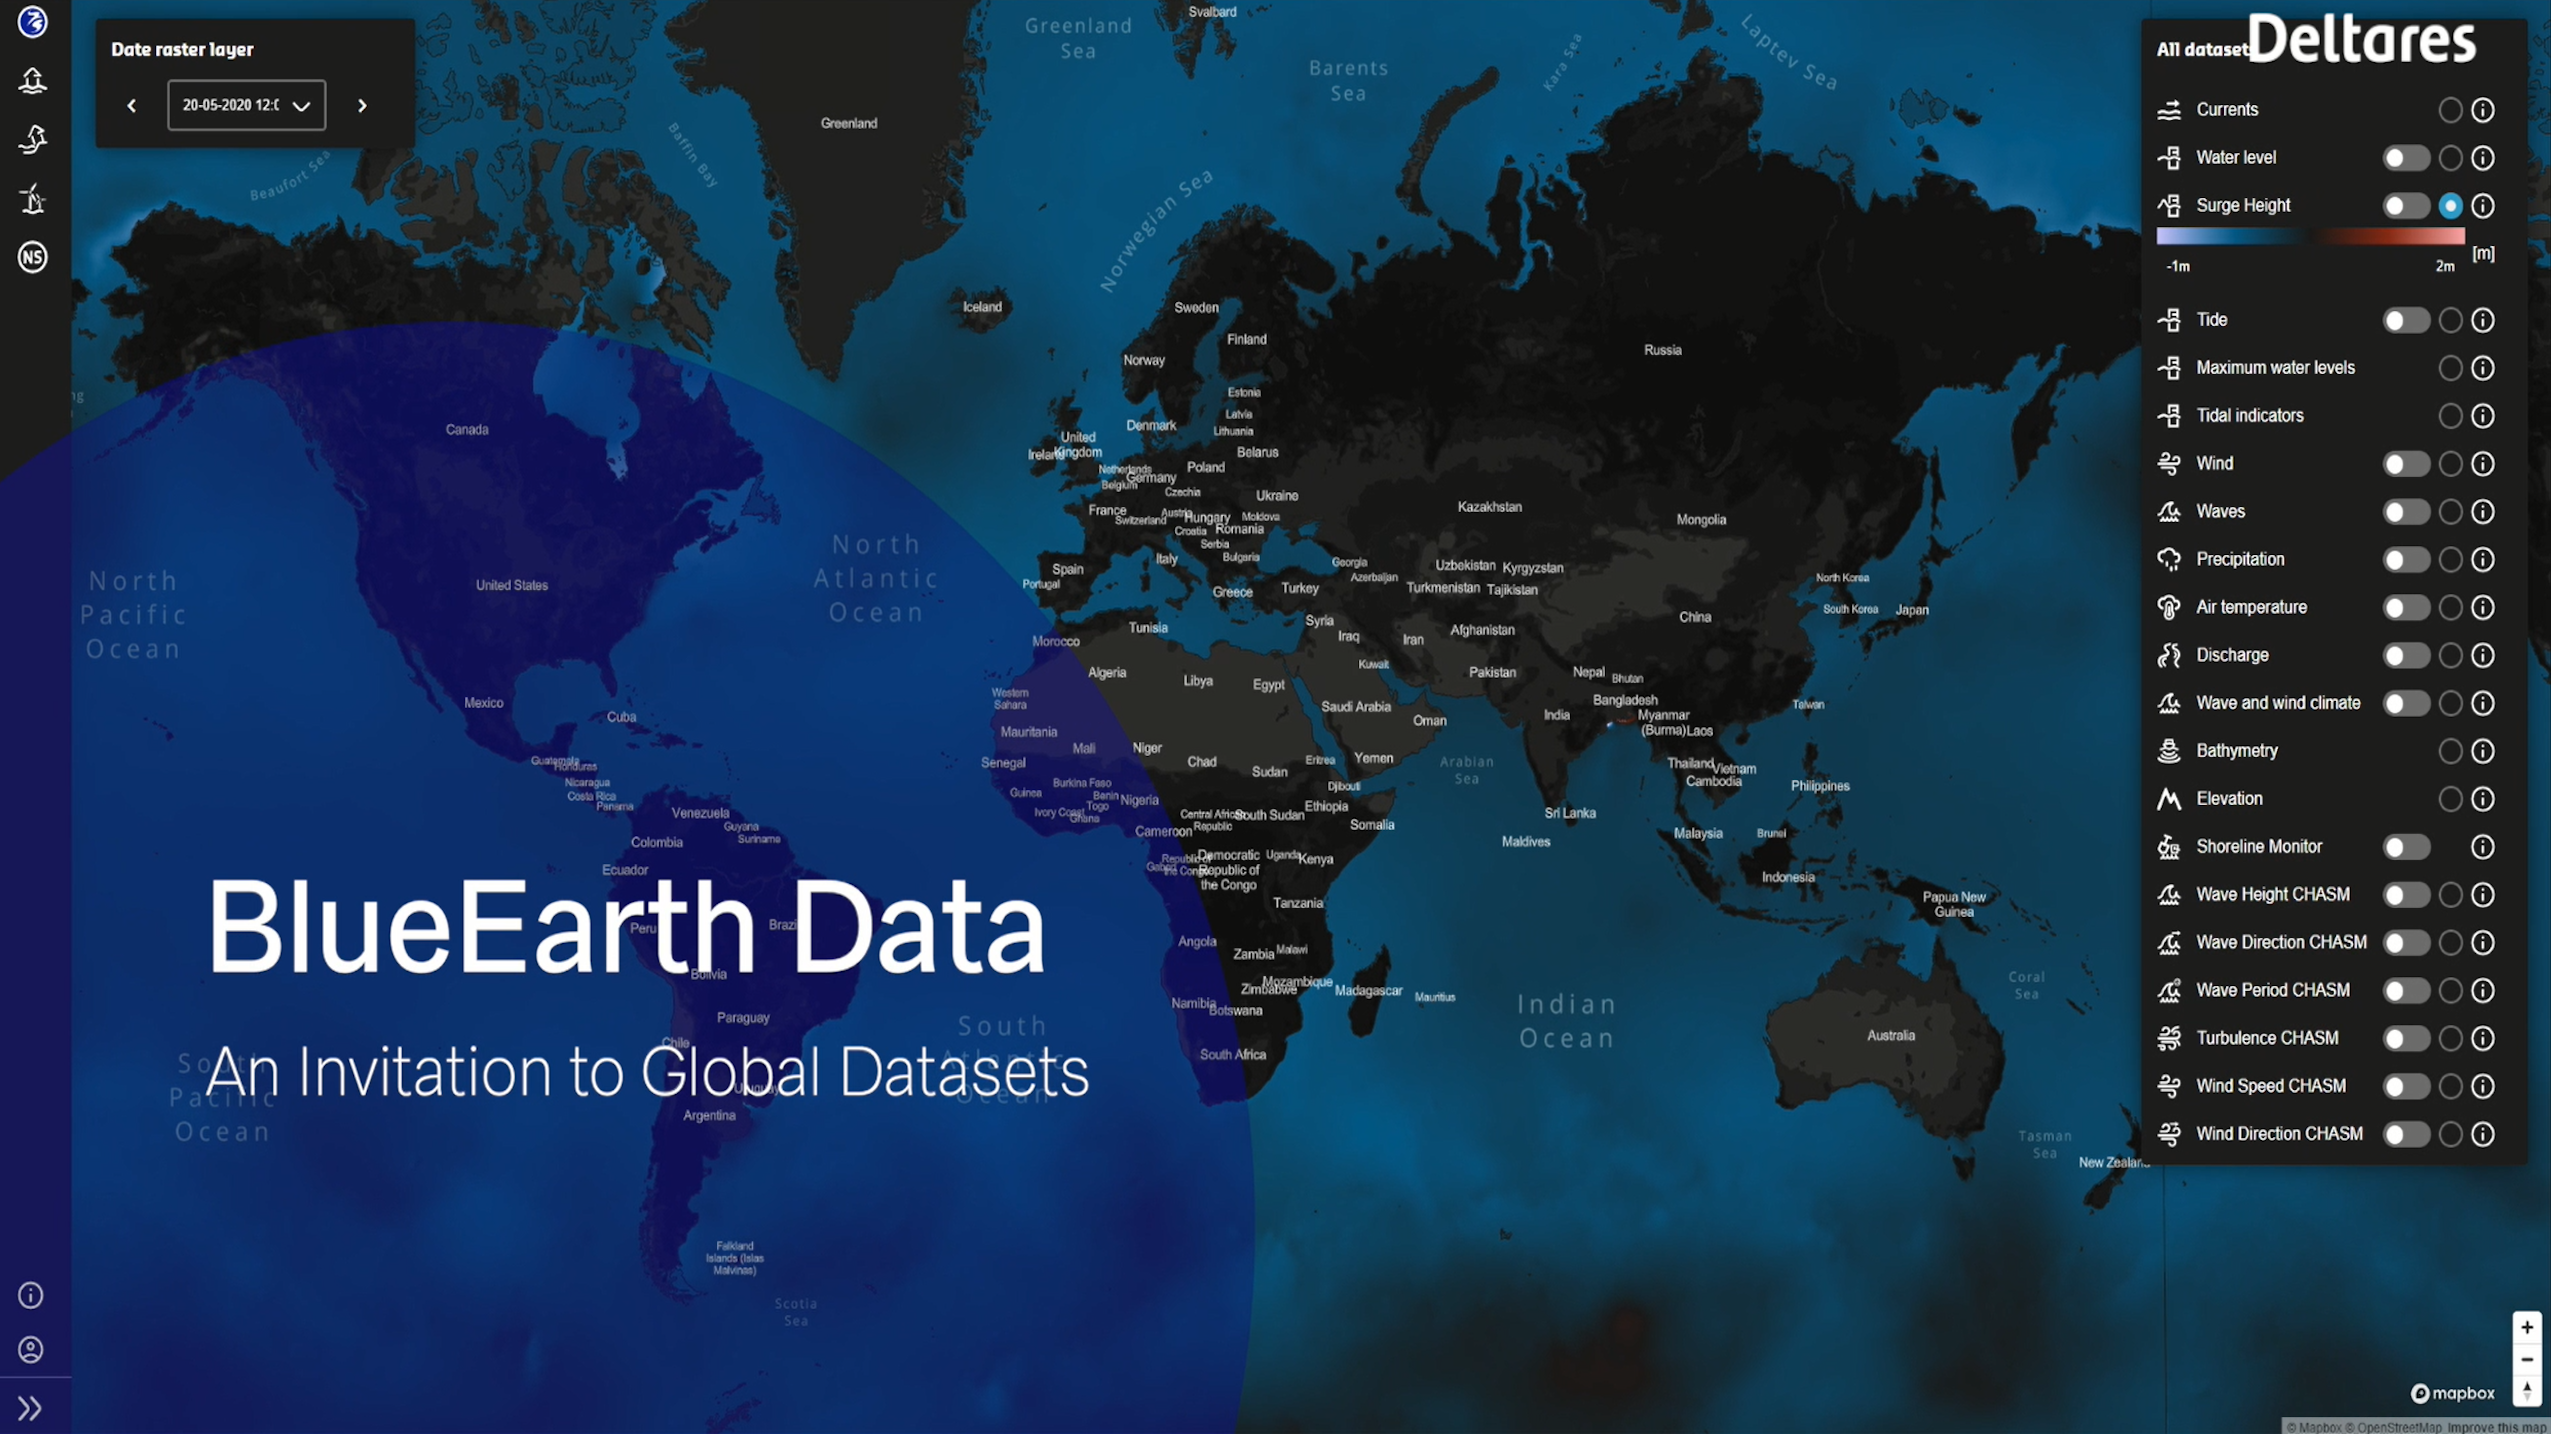 blueearth data platform deltares